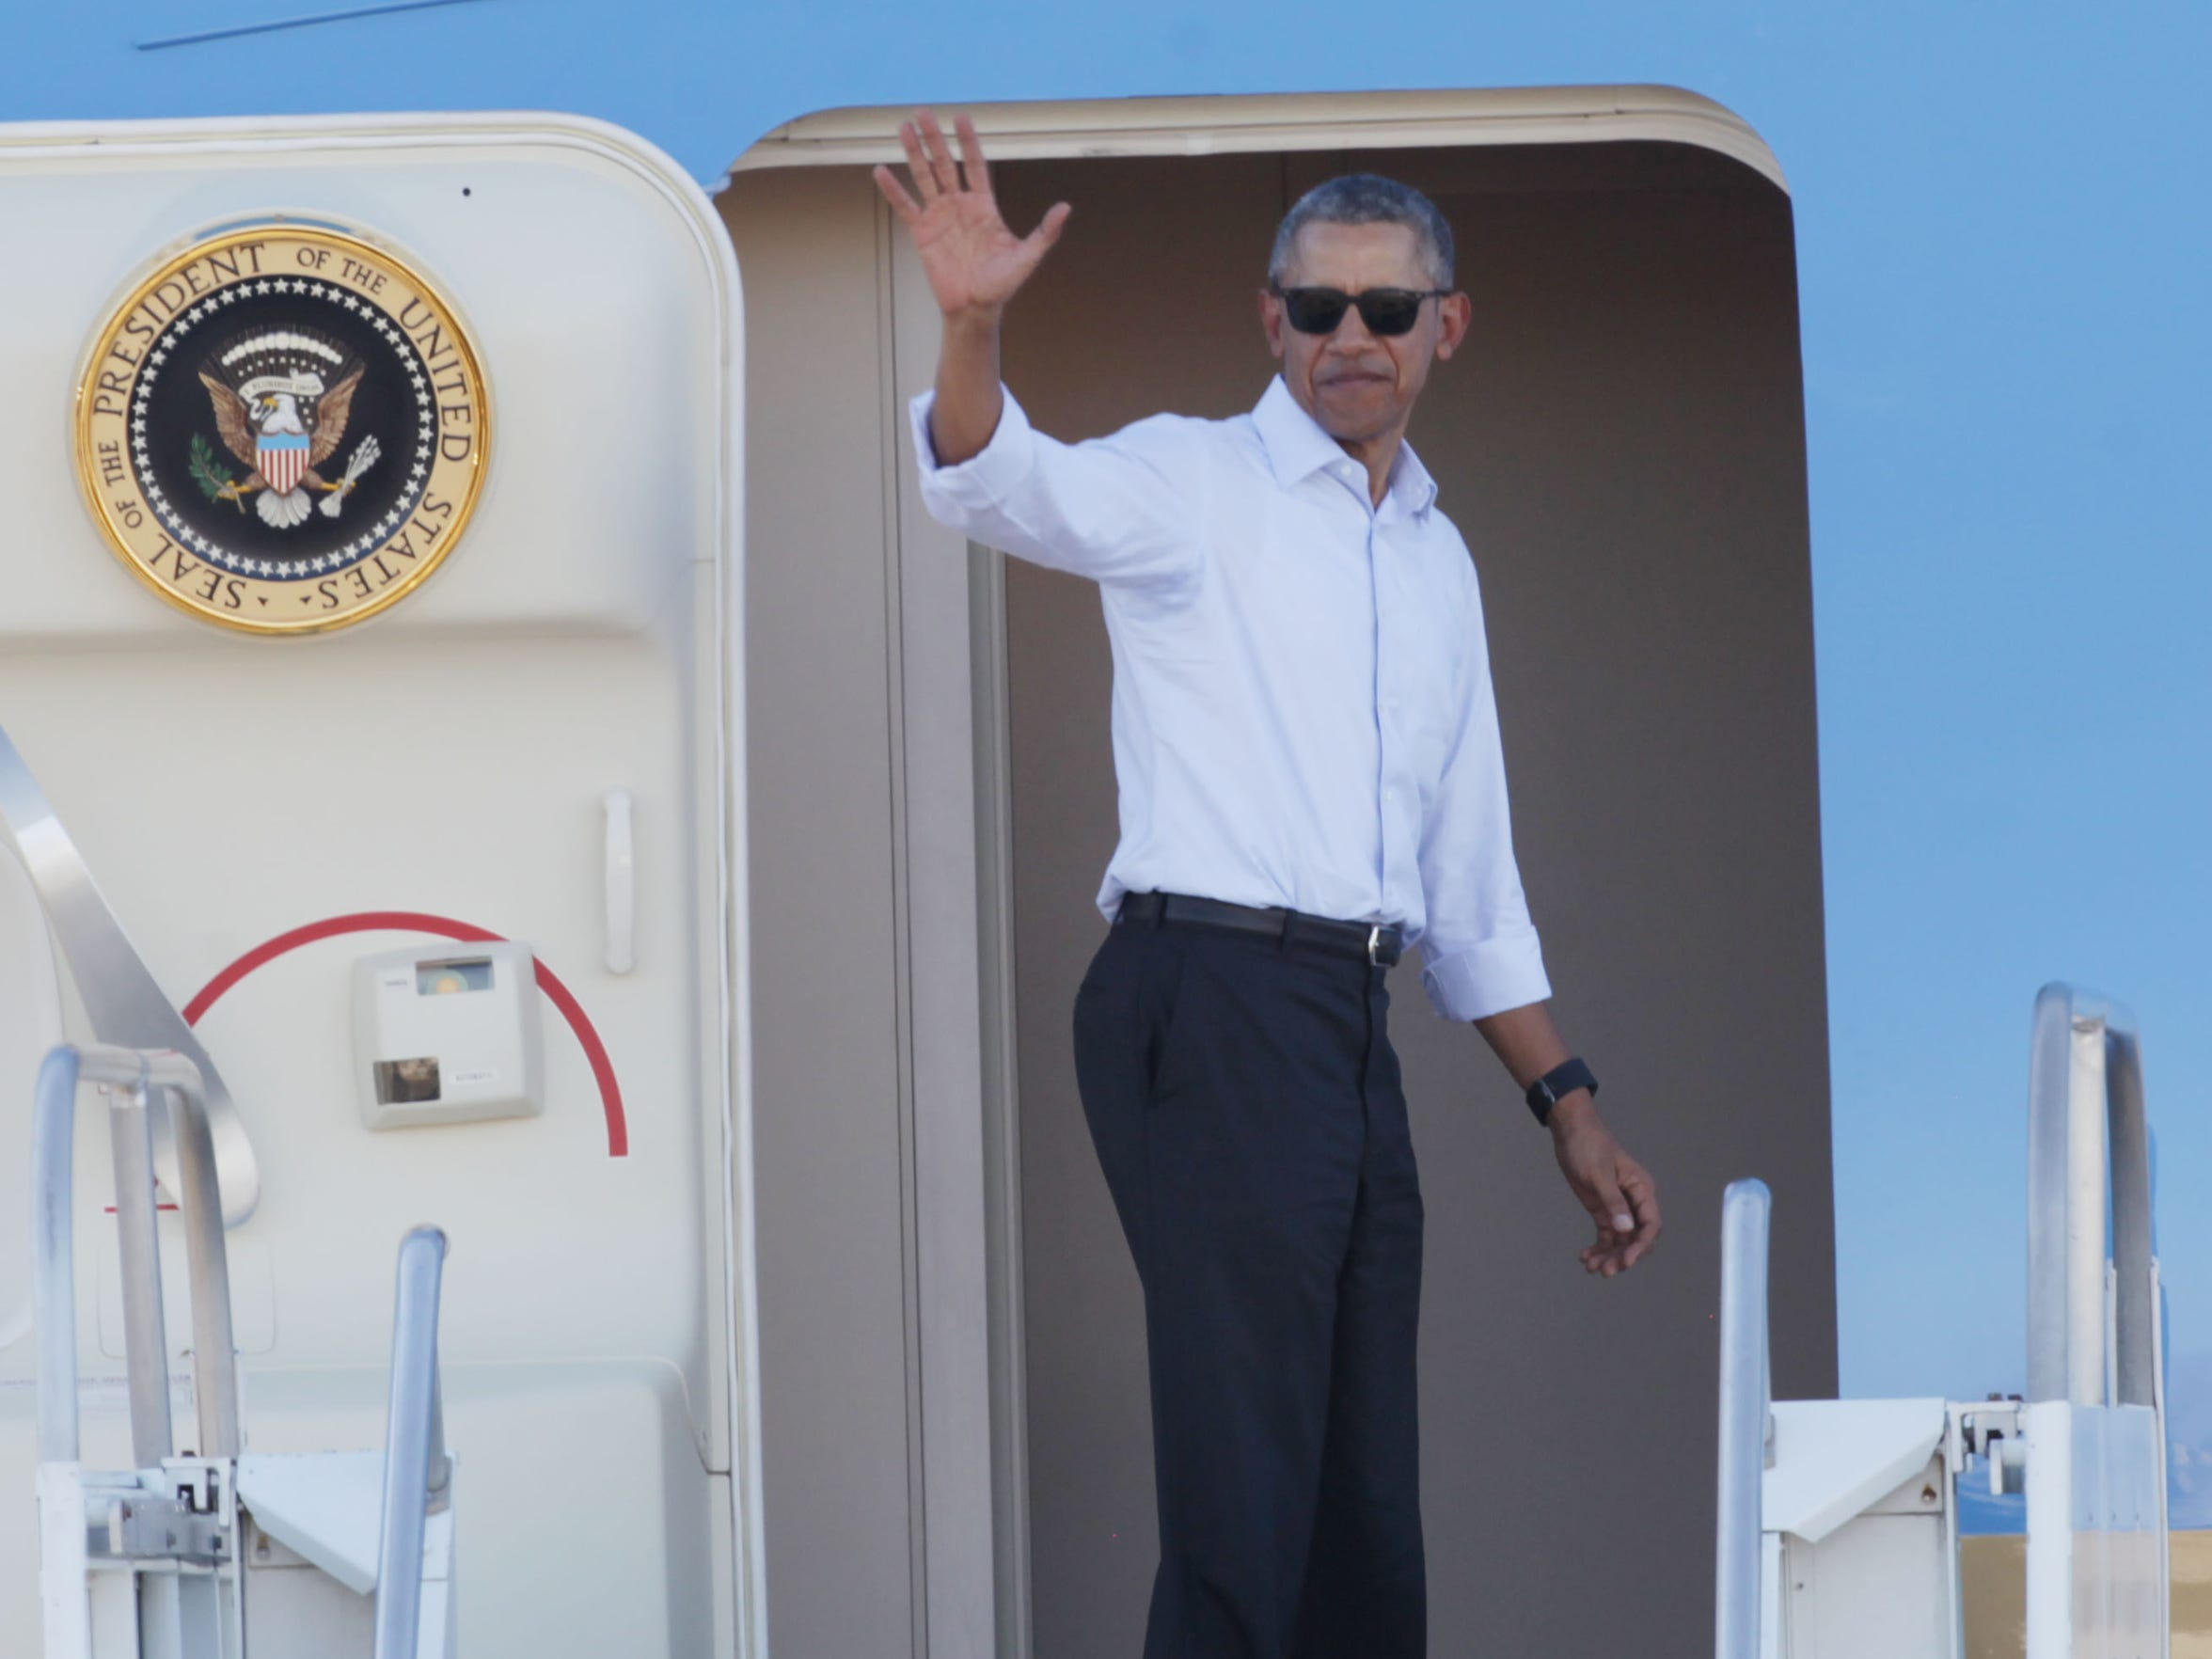 U.S. President Barack Obama departs Palm Springs International